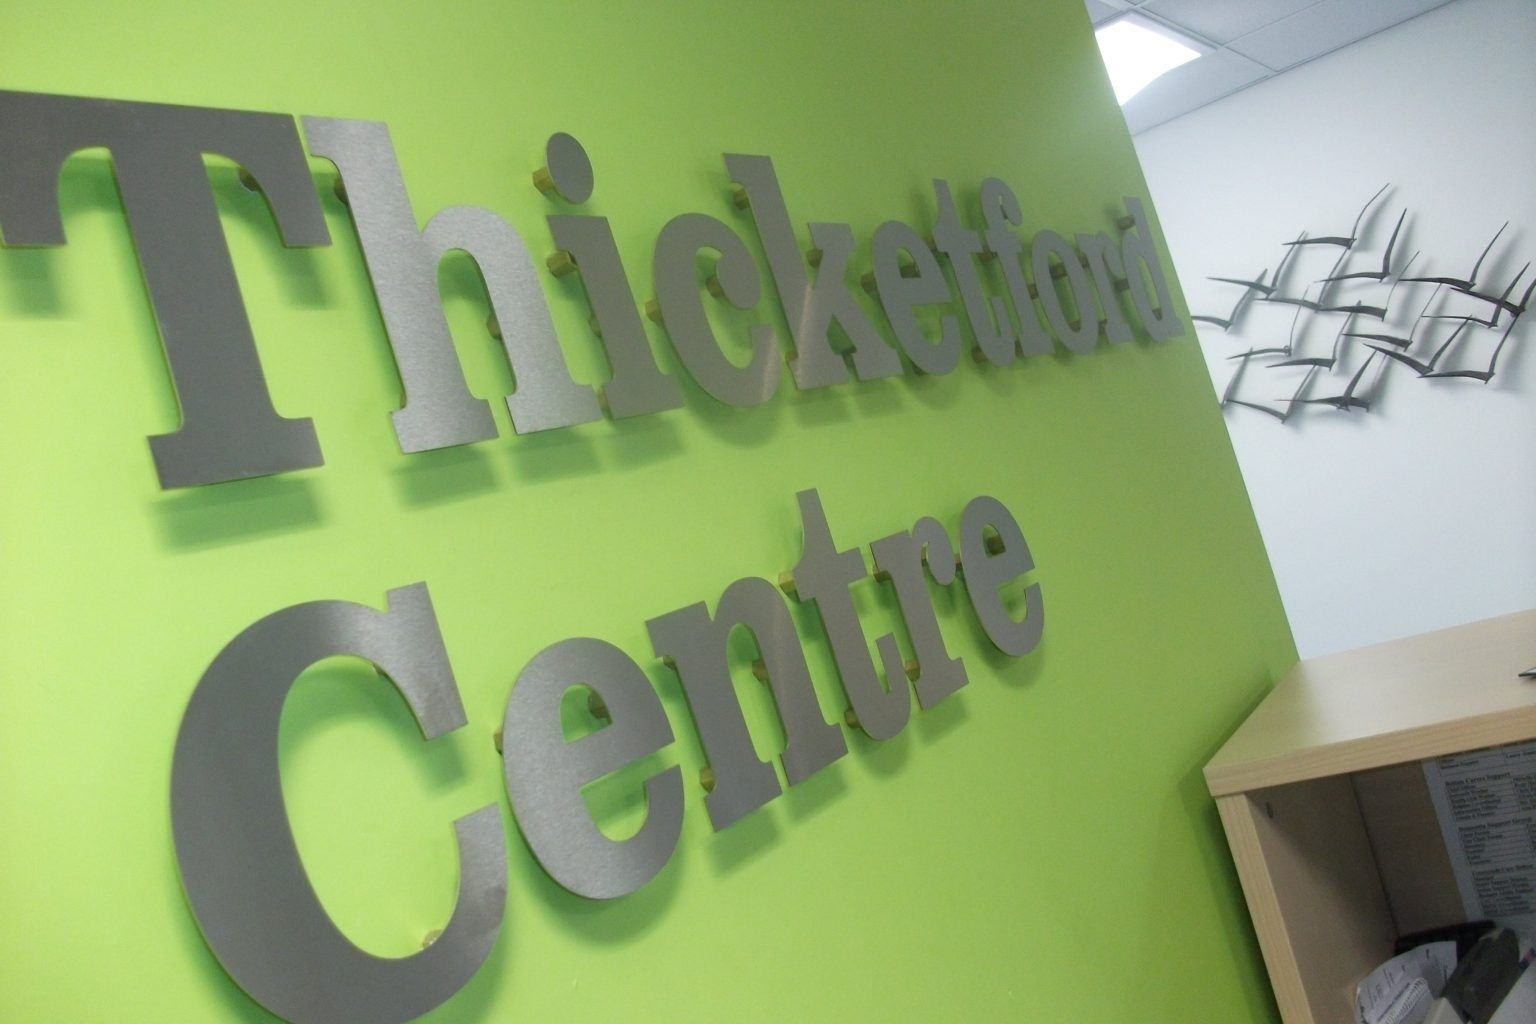 THICKFORD CENTRE STAINLESS STEEL LETTERS